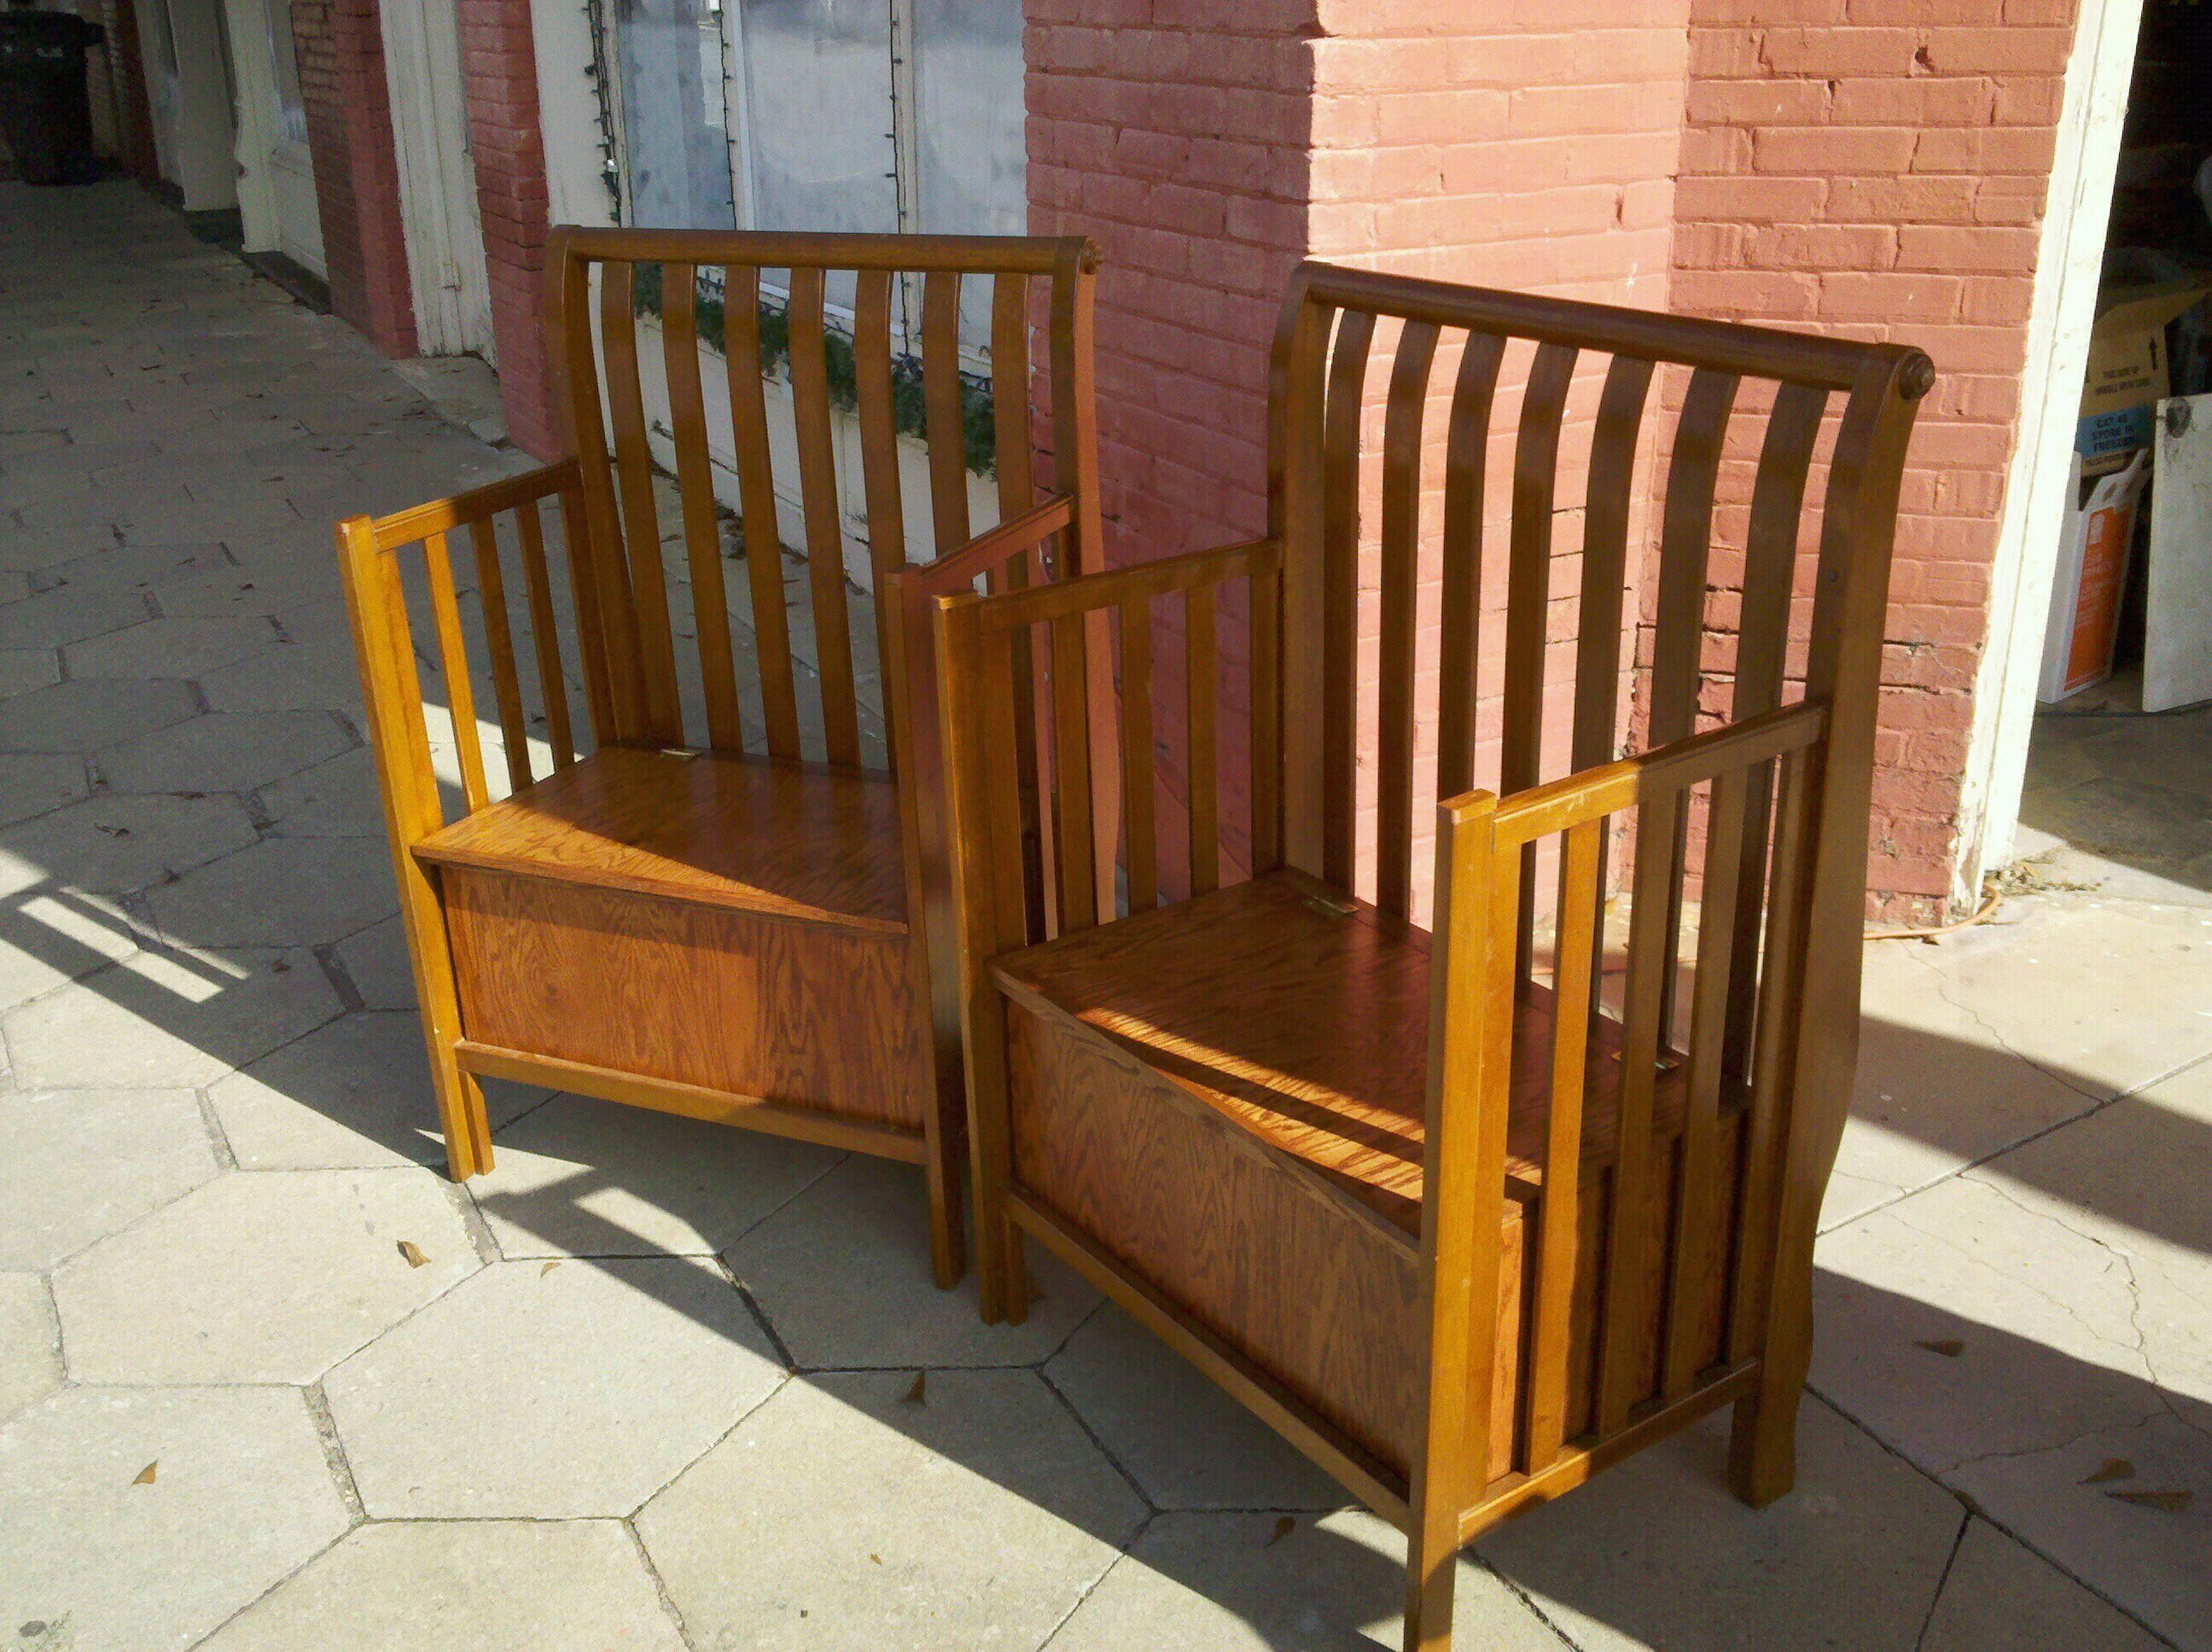 Bench By Bed: Beds To Benches In 2019